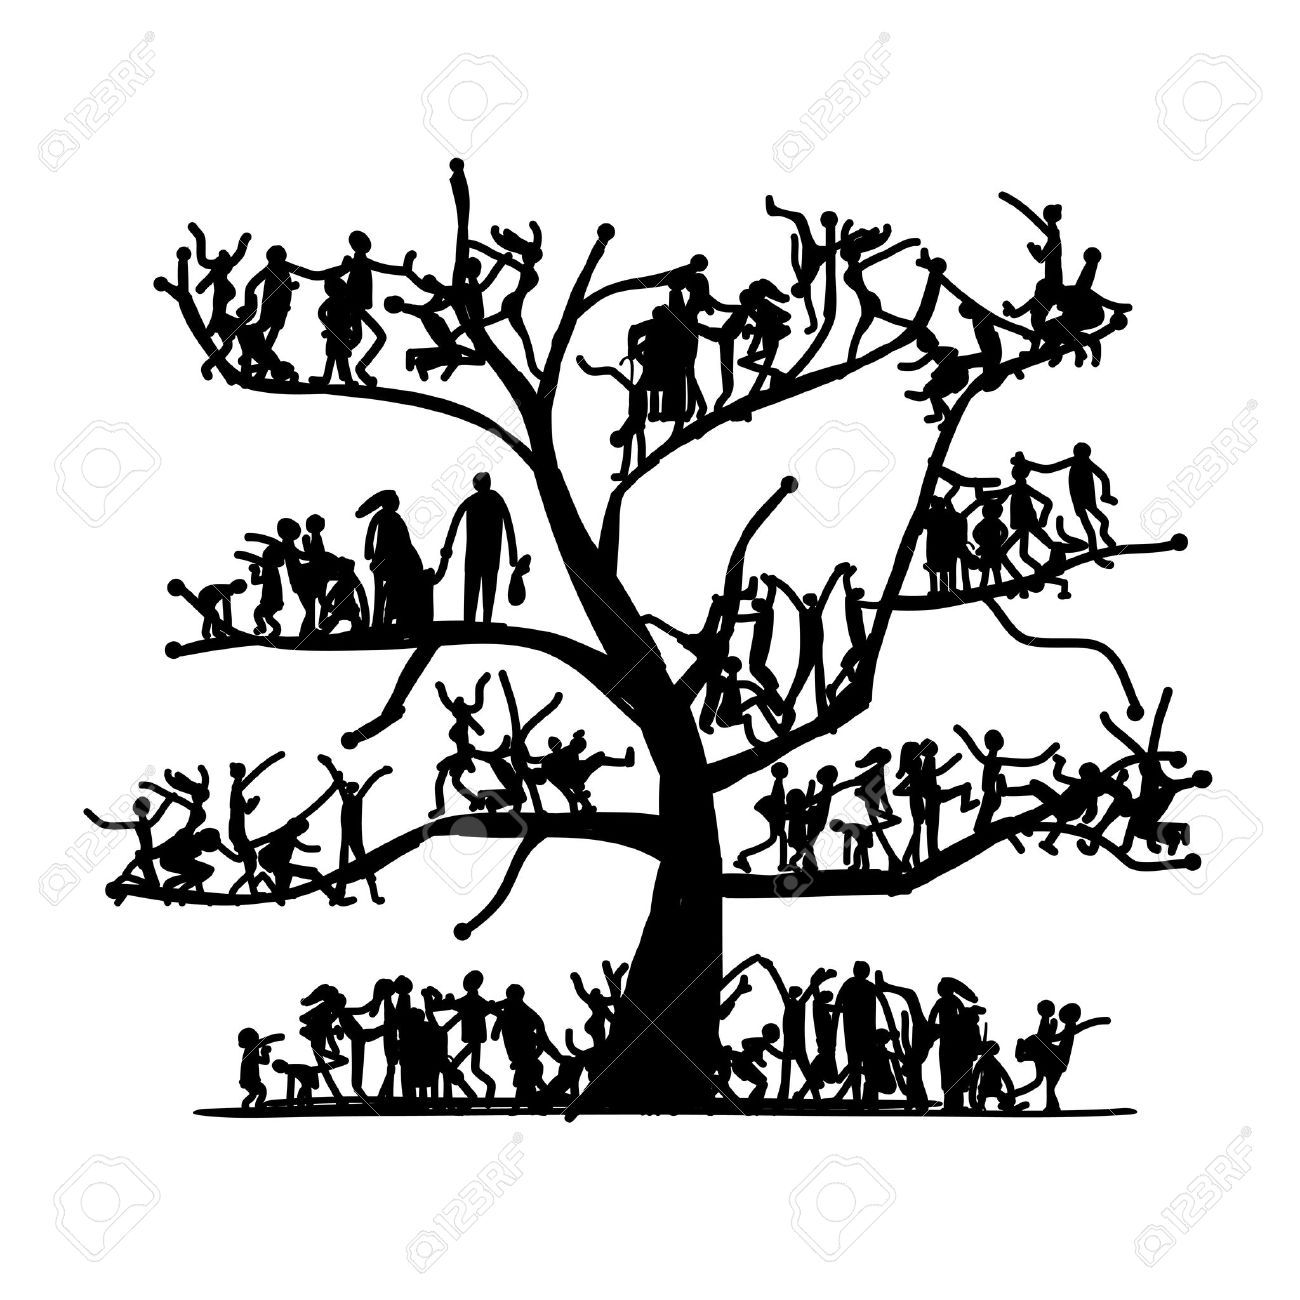 family tree images u0026 stock pictures royalty free family tree